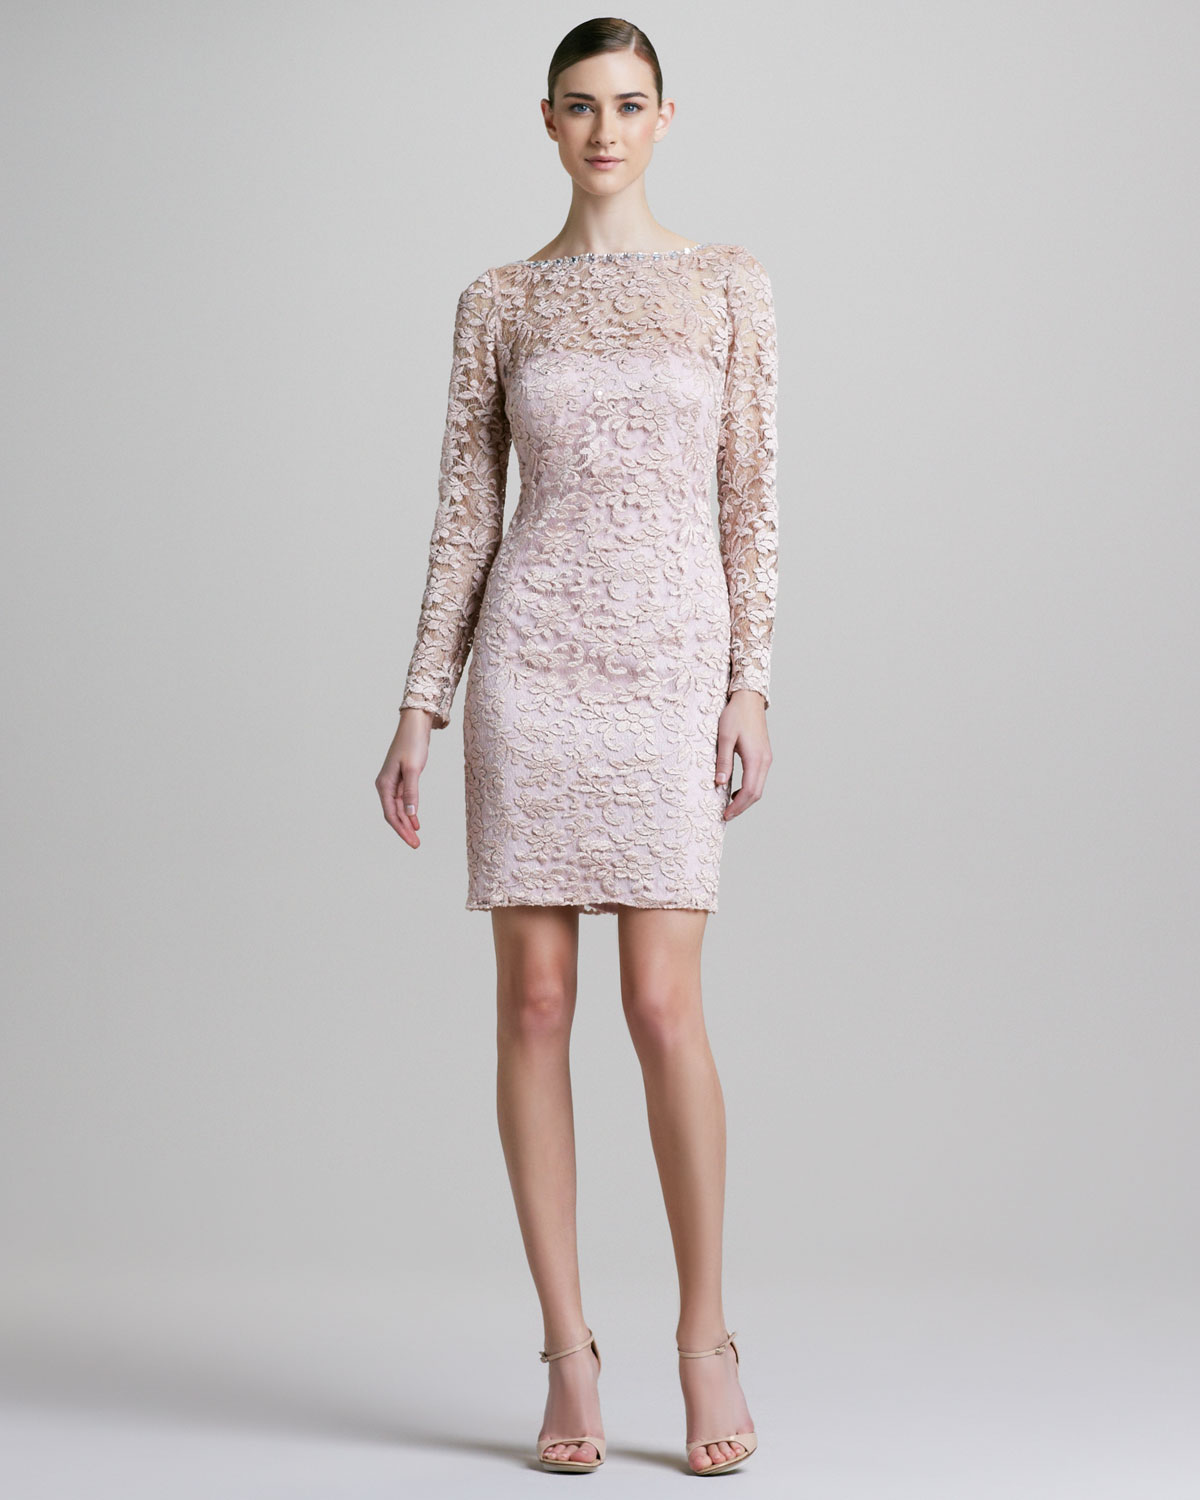 Lyst - Aidan Mattox Longsleeve Laceoverlay Cocktail Dress in Pink